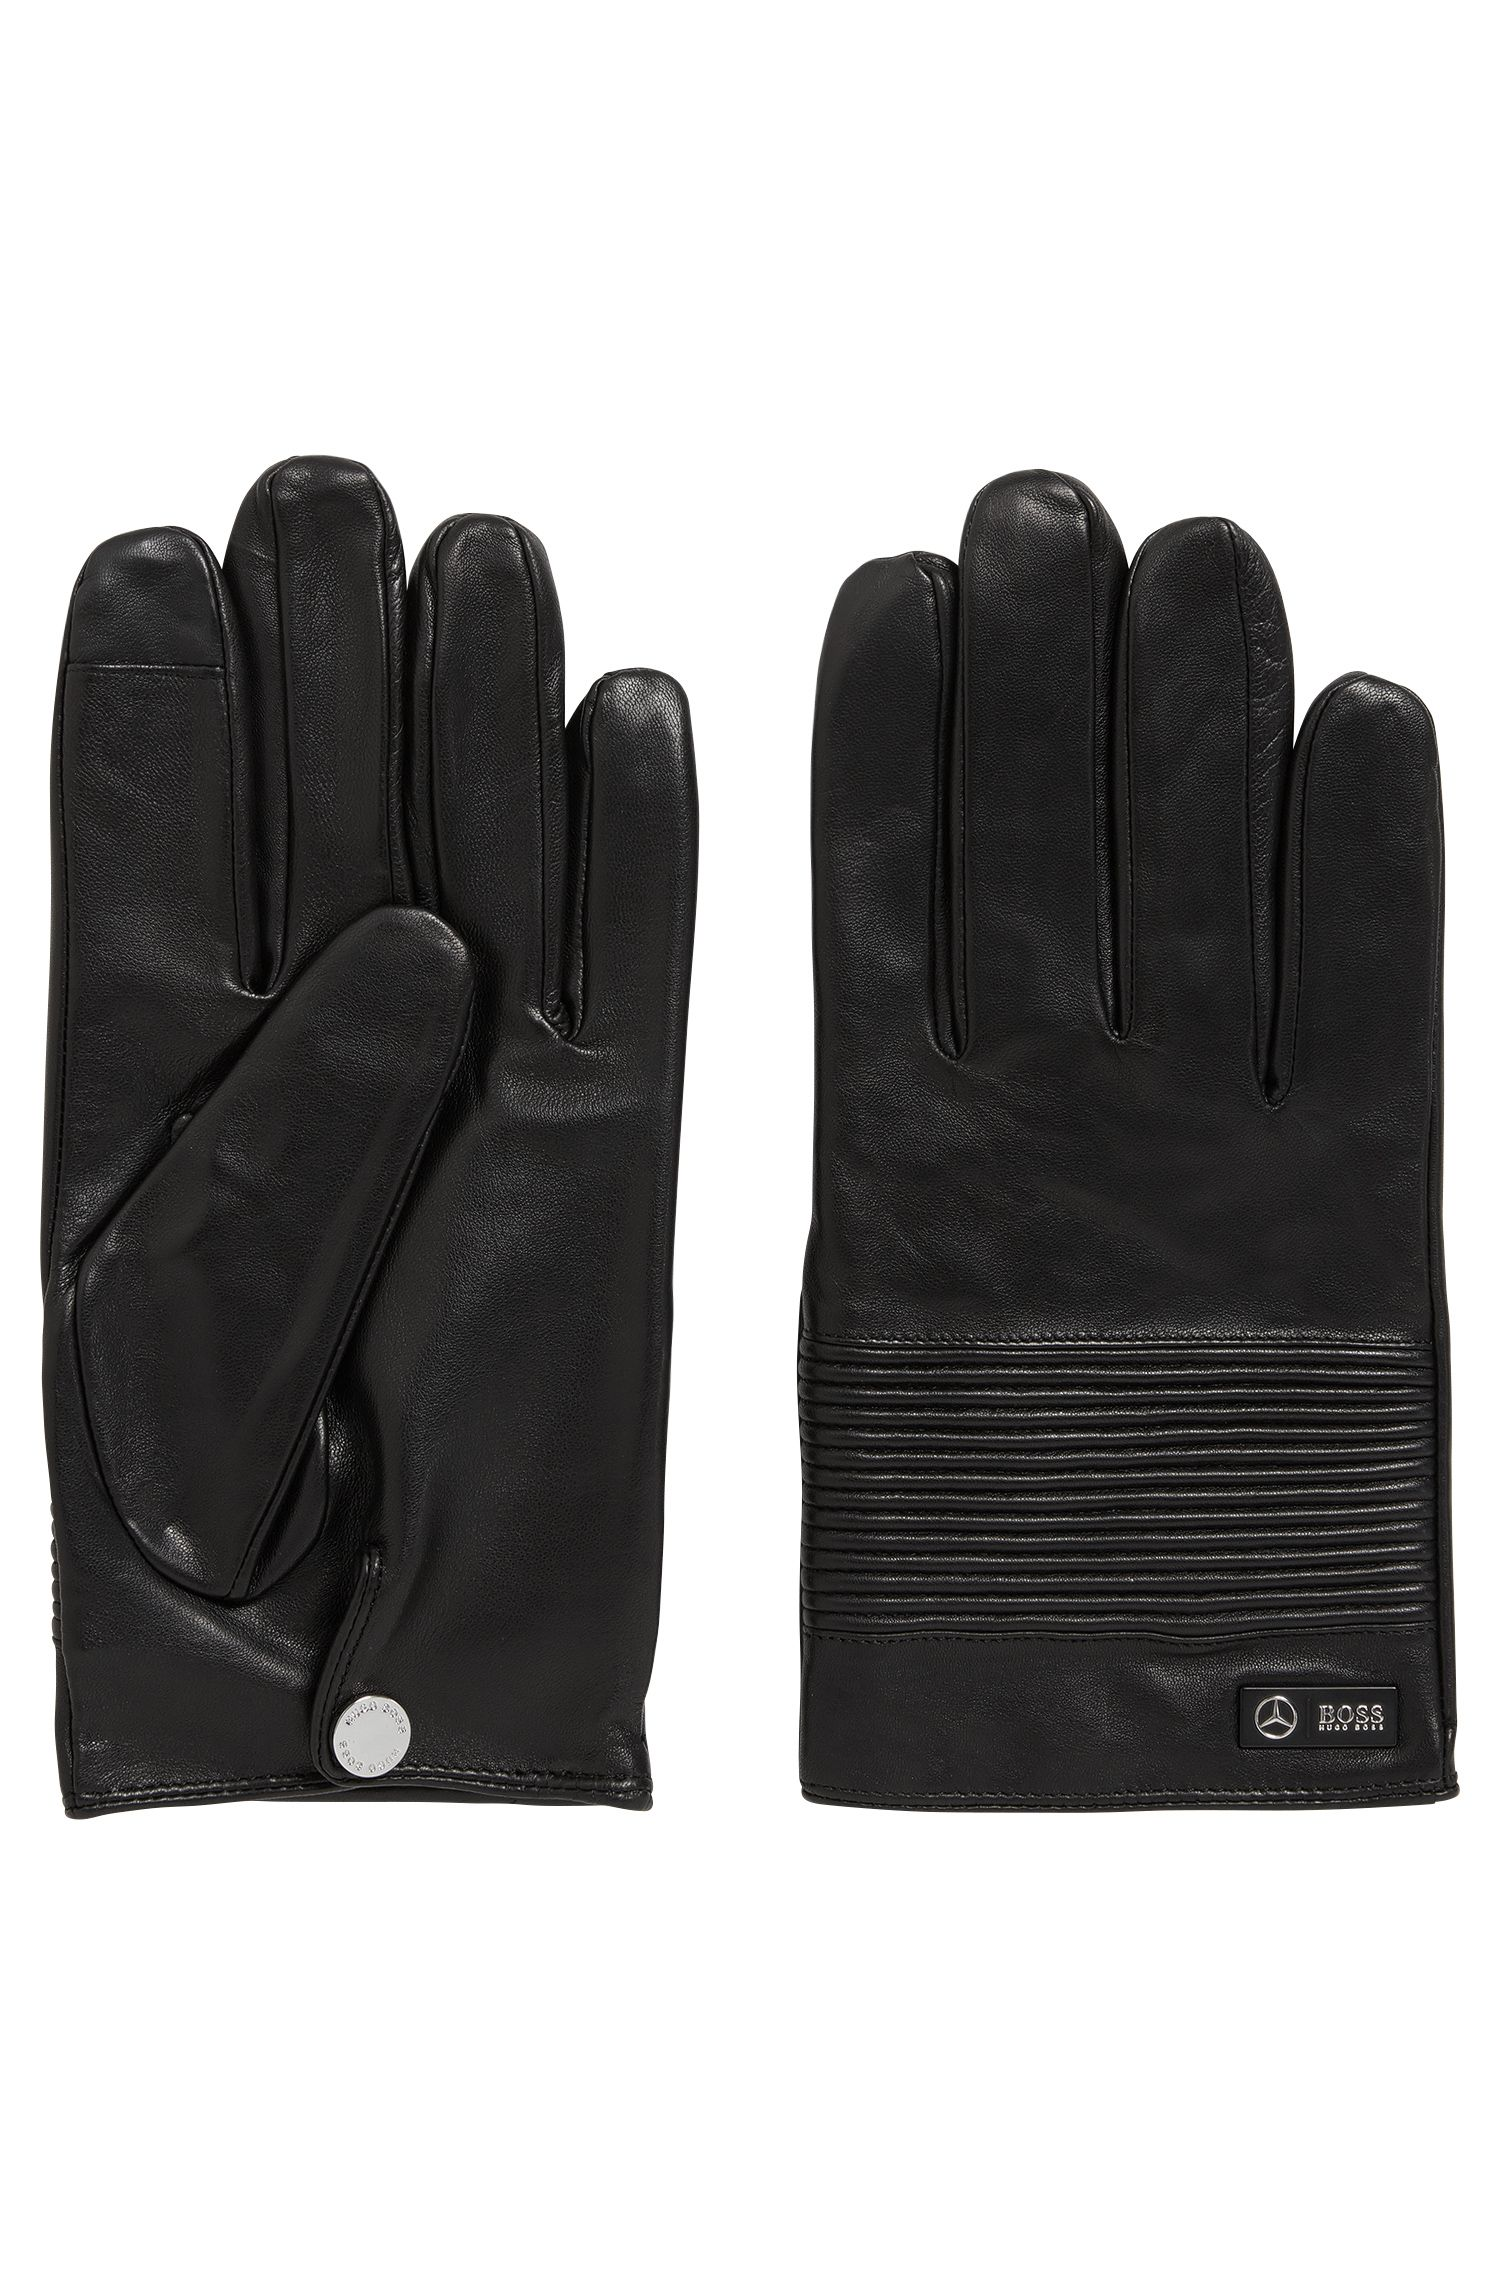 Mercedes-Benz Collection nappa leather gloves with smocked detail